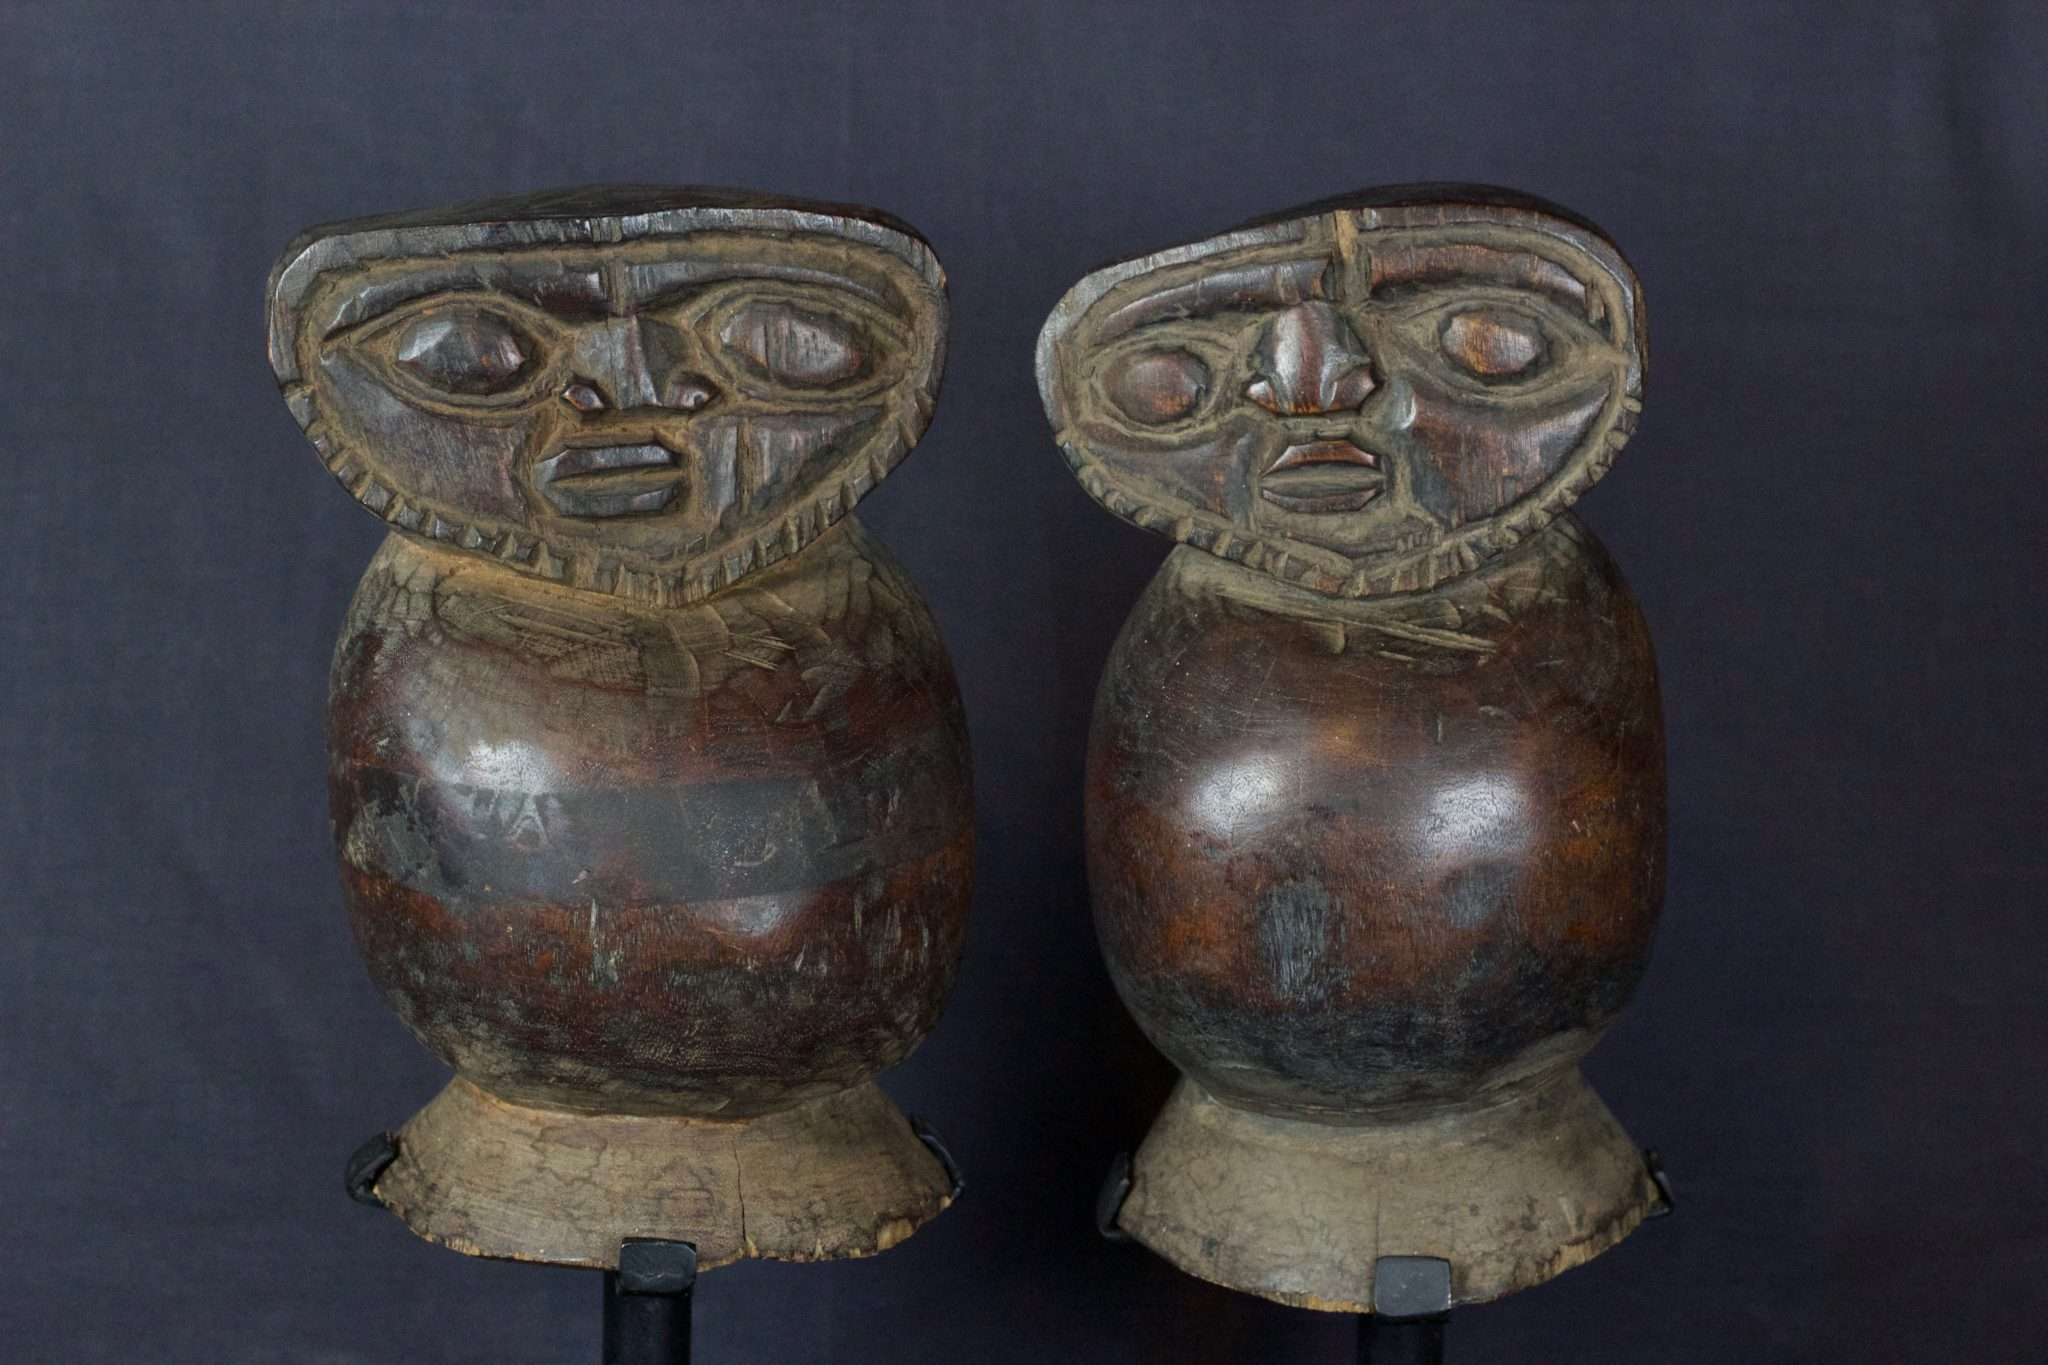 "Magic Ghost Figures, Lombok Island, Lesser Sunda Islands, Indonesia, Early 20th c, Wood, smooth patina from use and age. 8 ½"" x 5 ¾"" x 5 ½"", $790 (sold as pair)"